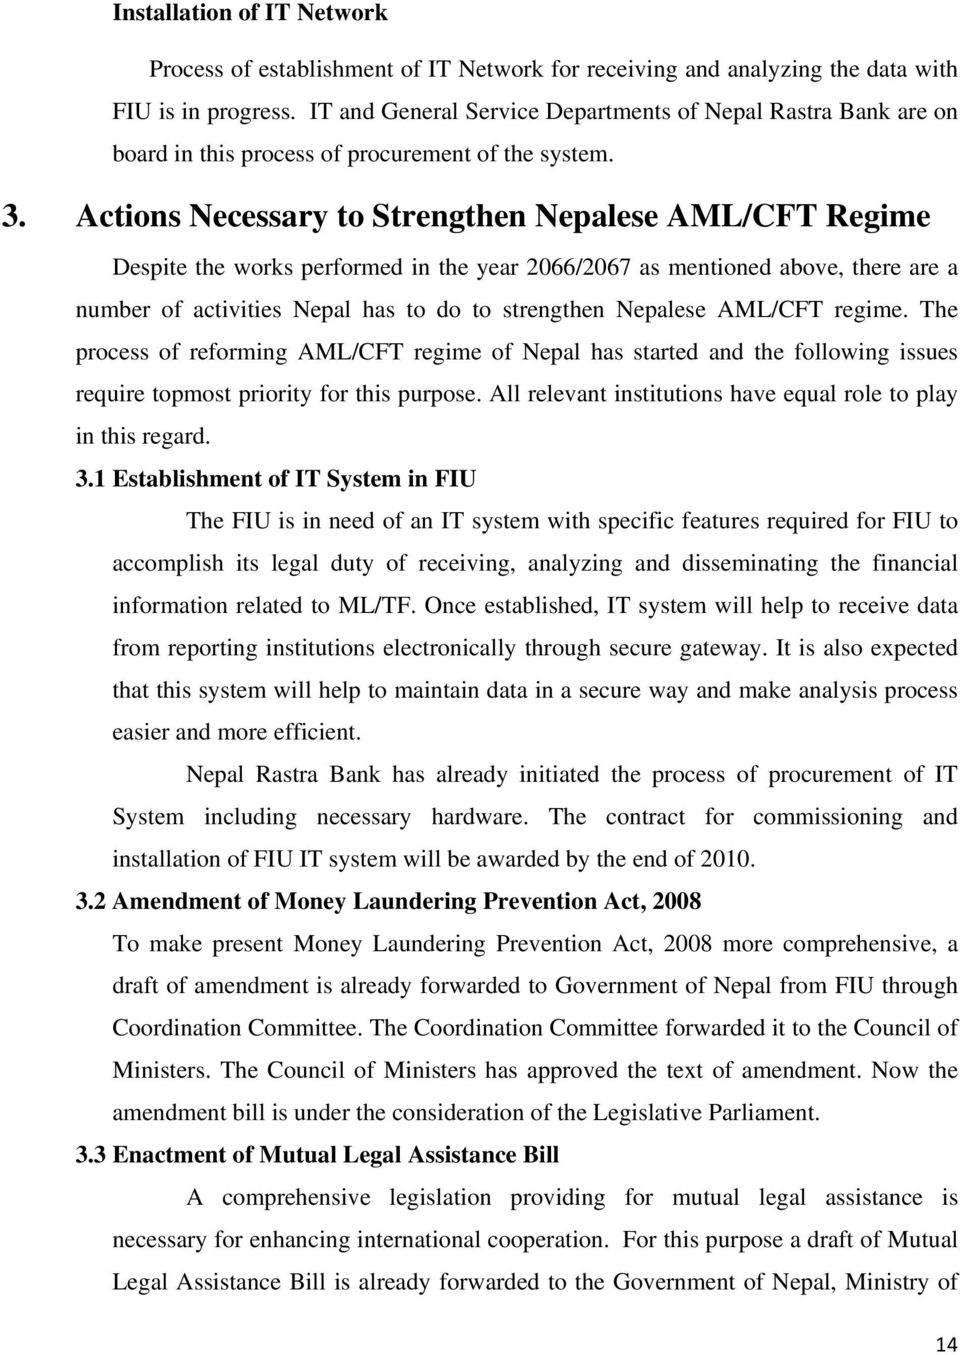 Actions Necessary to Strengthen Nepalese AML/CFT Regime Despite the works performed in the year 2066/2067 as mentioned above, there are a number of activities Nepal has to do to strengthen Nepalese